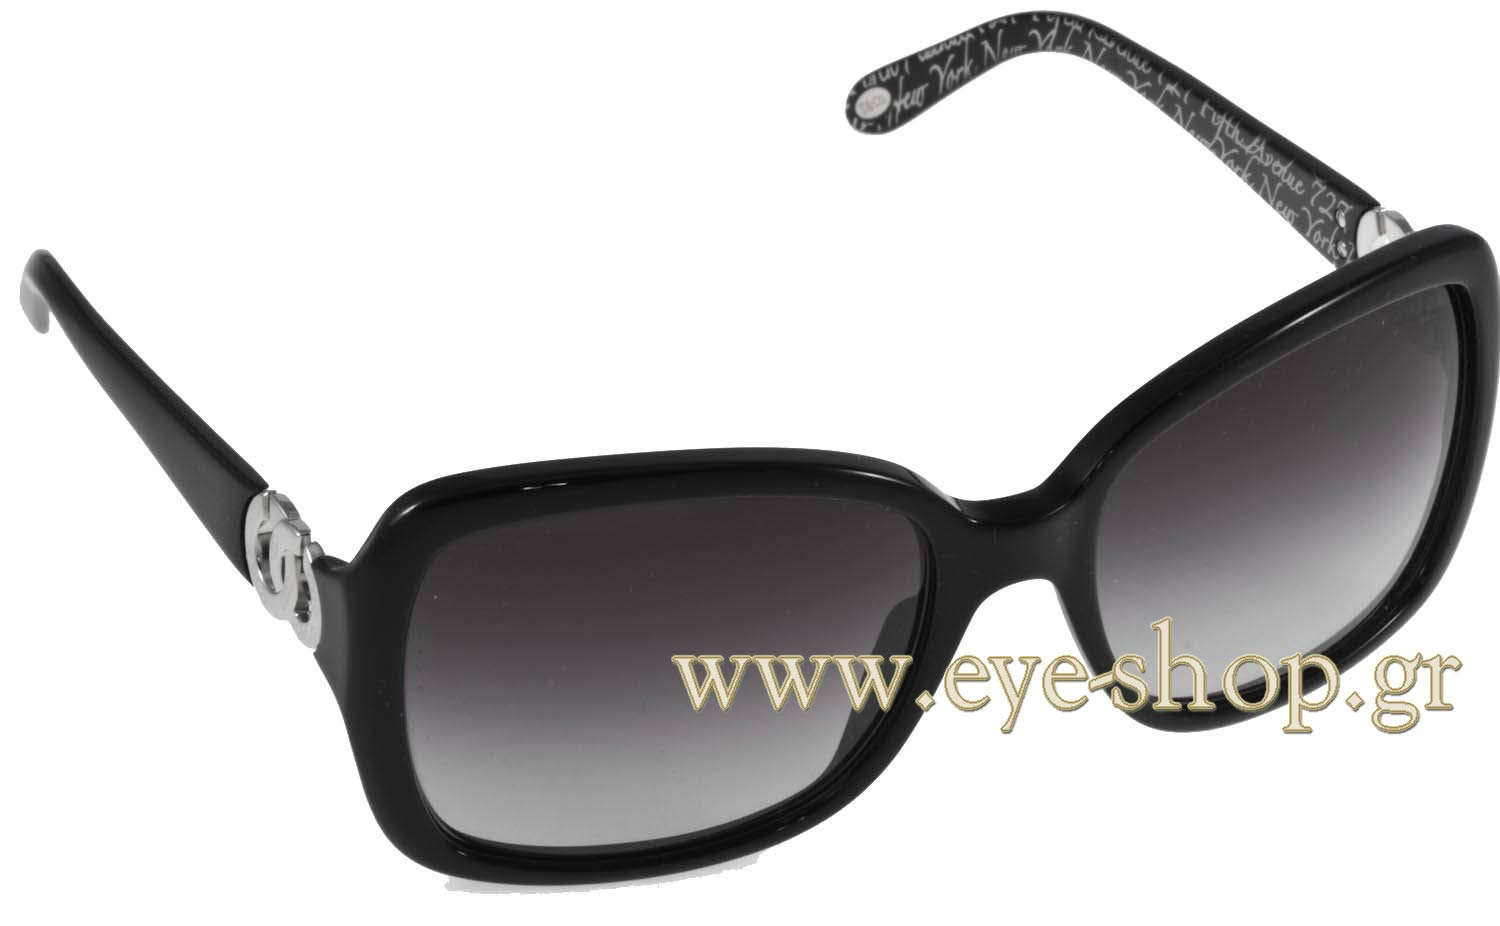 ff88f0d3ceb5 SUNGLASSES Tiffany 4029 80013C